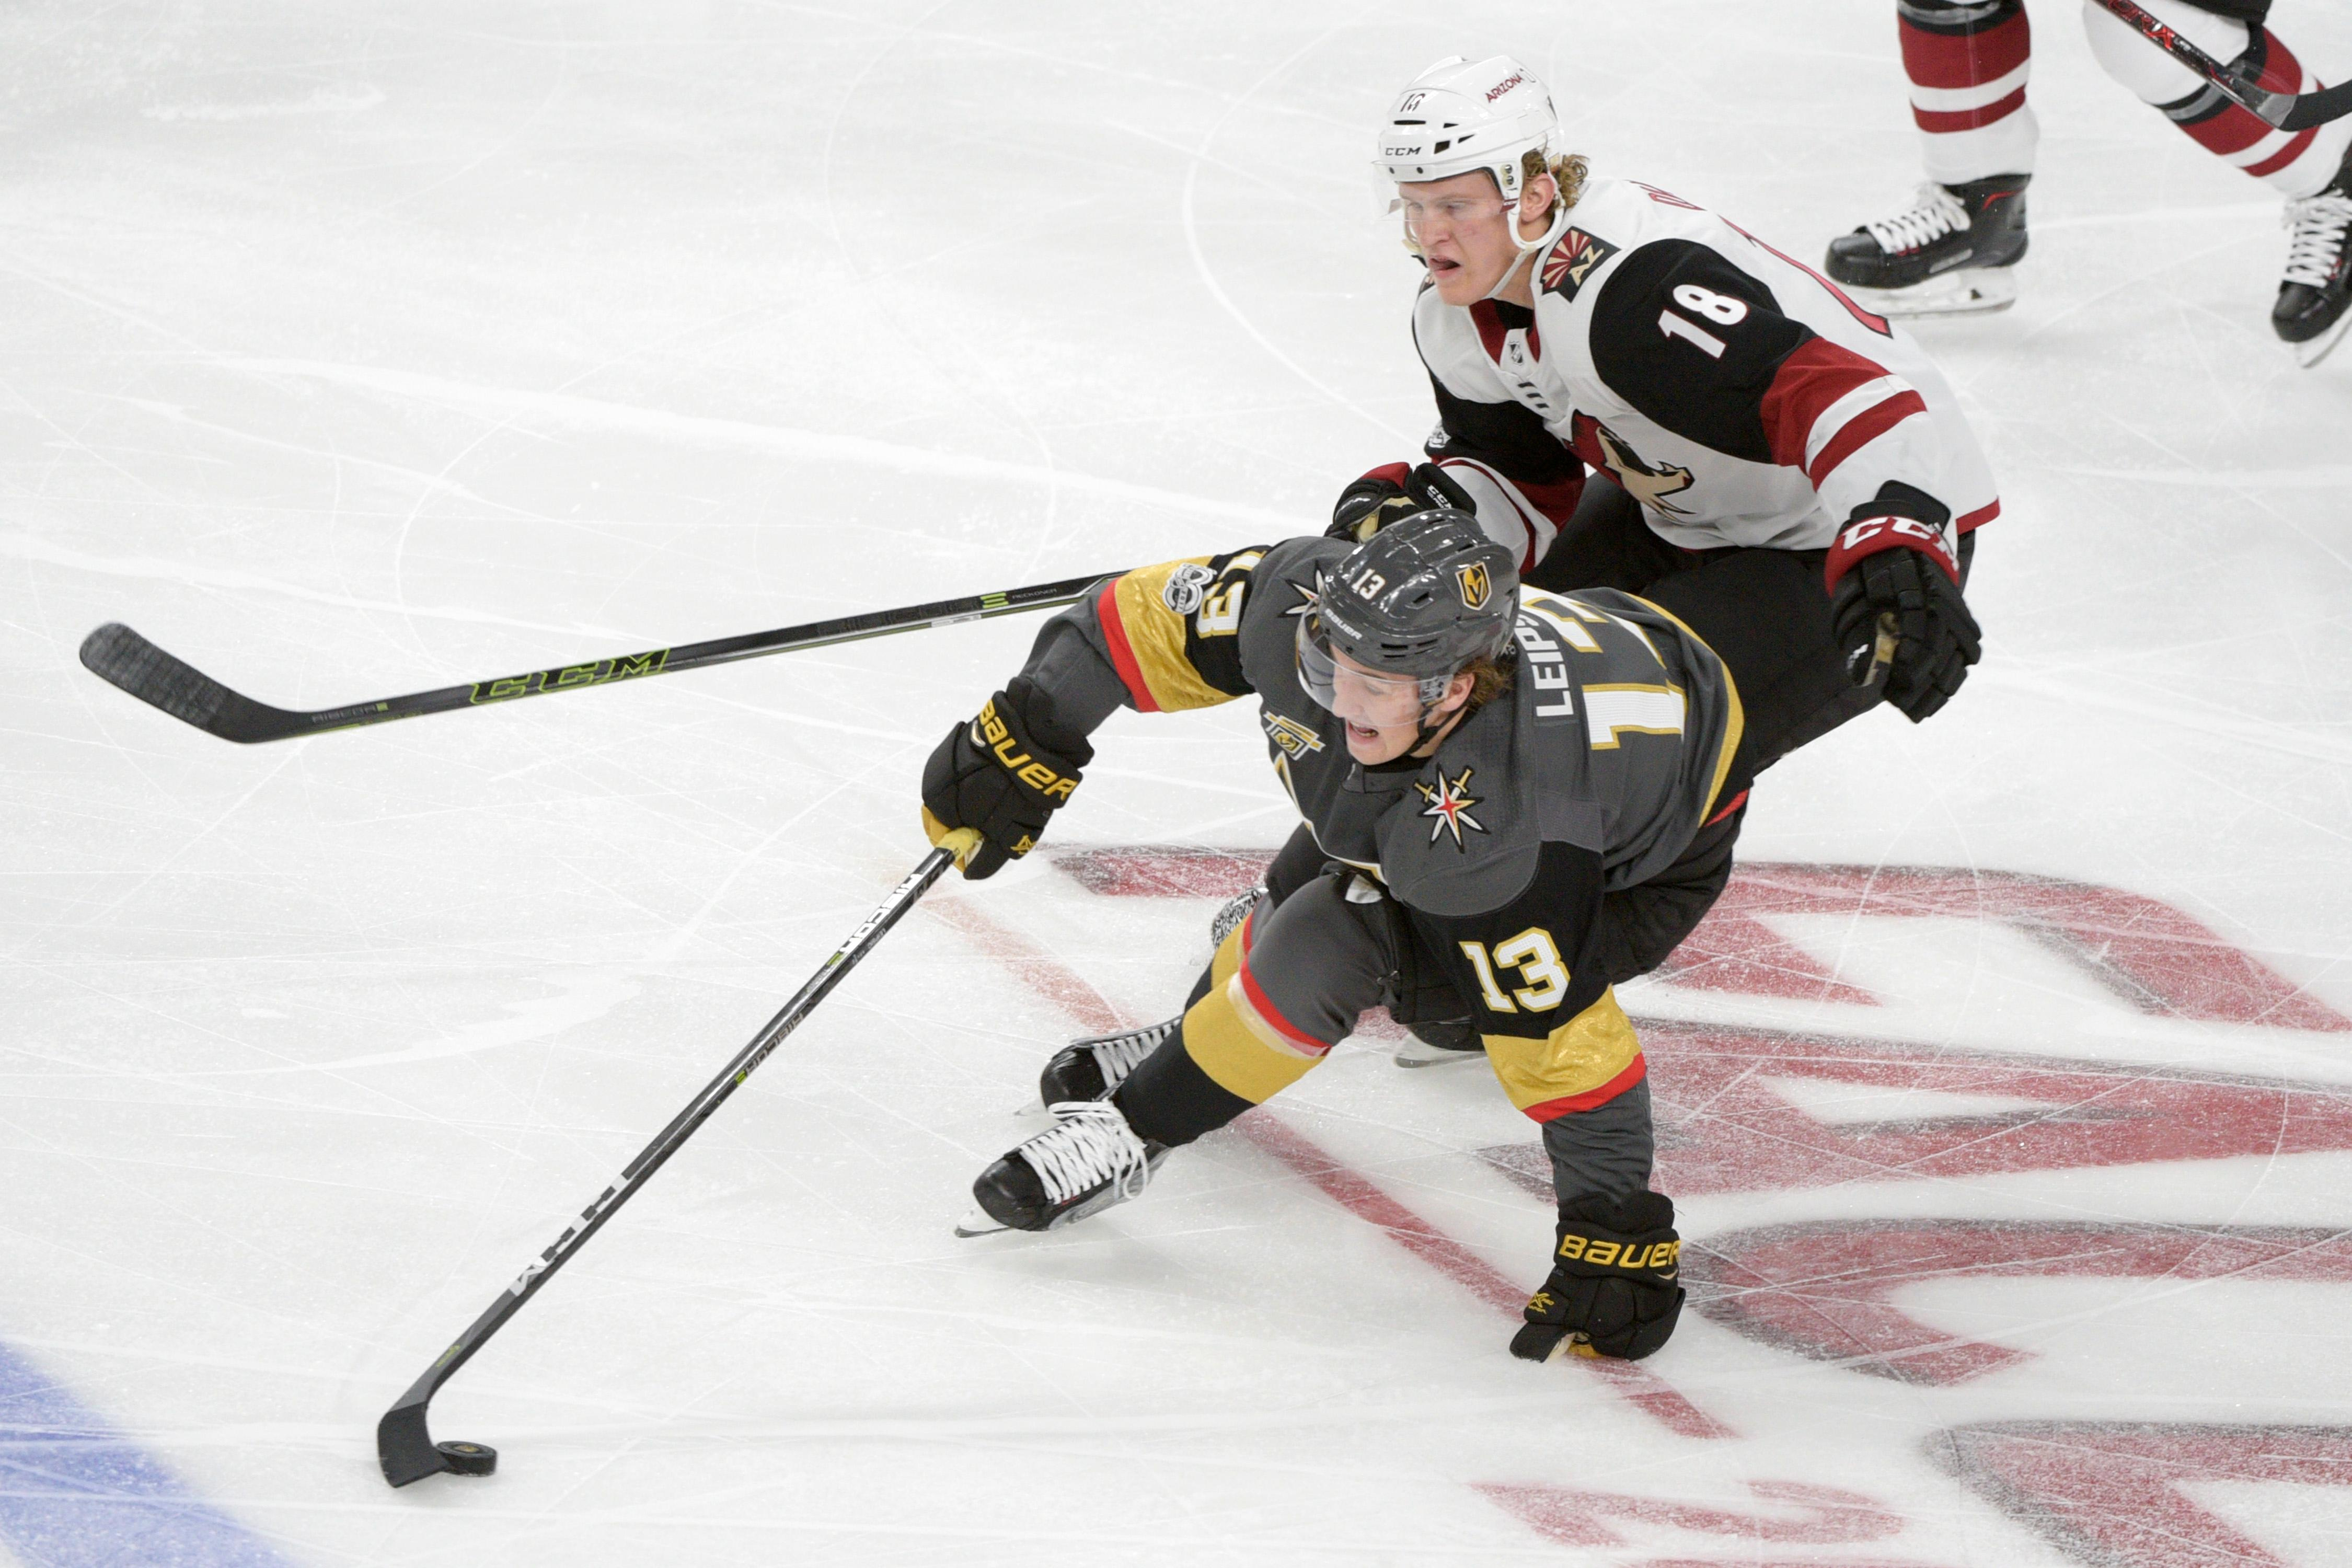 Vegas Golden Knights right wing Brendan Leipsic (13) keeps the puck away from Arizona Coyotes center Christian Dvorak (18) during the Knights home opener Tuesday, Oct. 10, 2017, at the T-Mobile Arena. The Knights won 5-2 to extend their winning streak to 3-0. CREDIT: Sam Morris/Las Vegas News Bureau